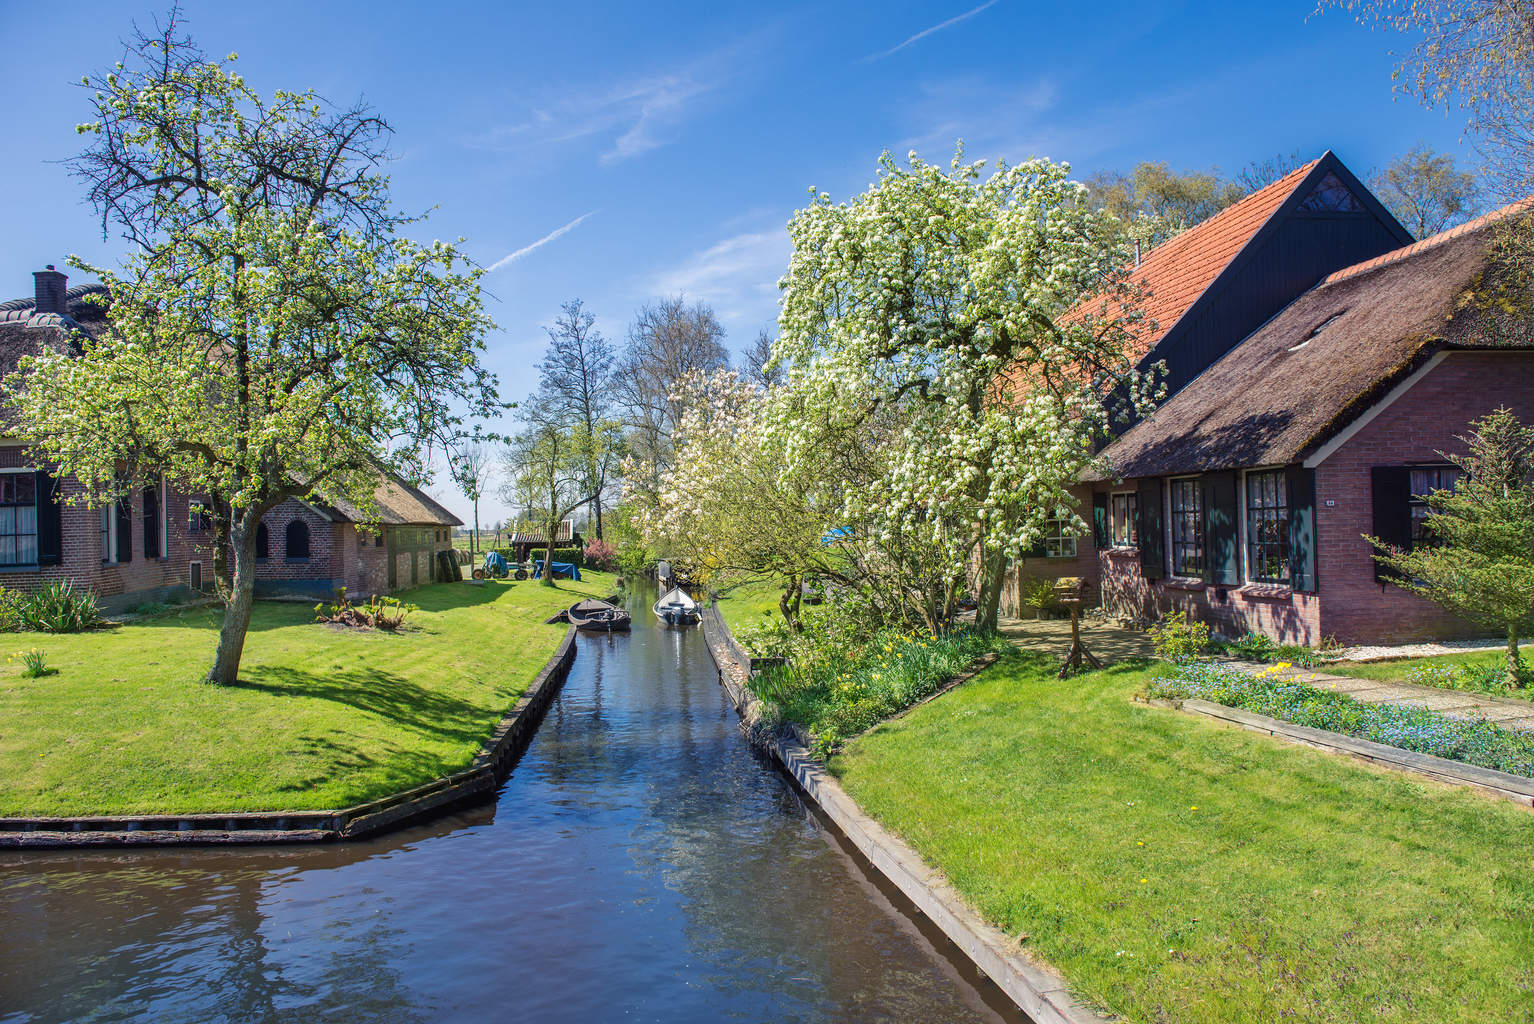 Spring in Giethoorn, a small village in Overijssel province in t